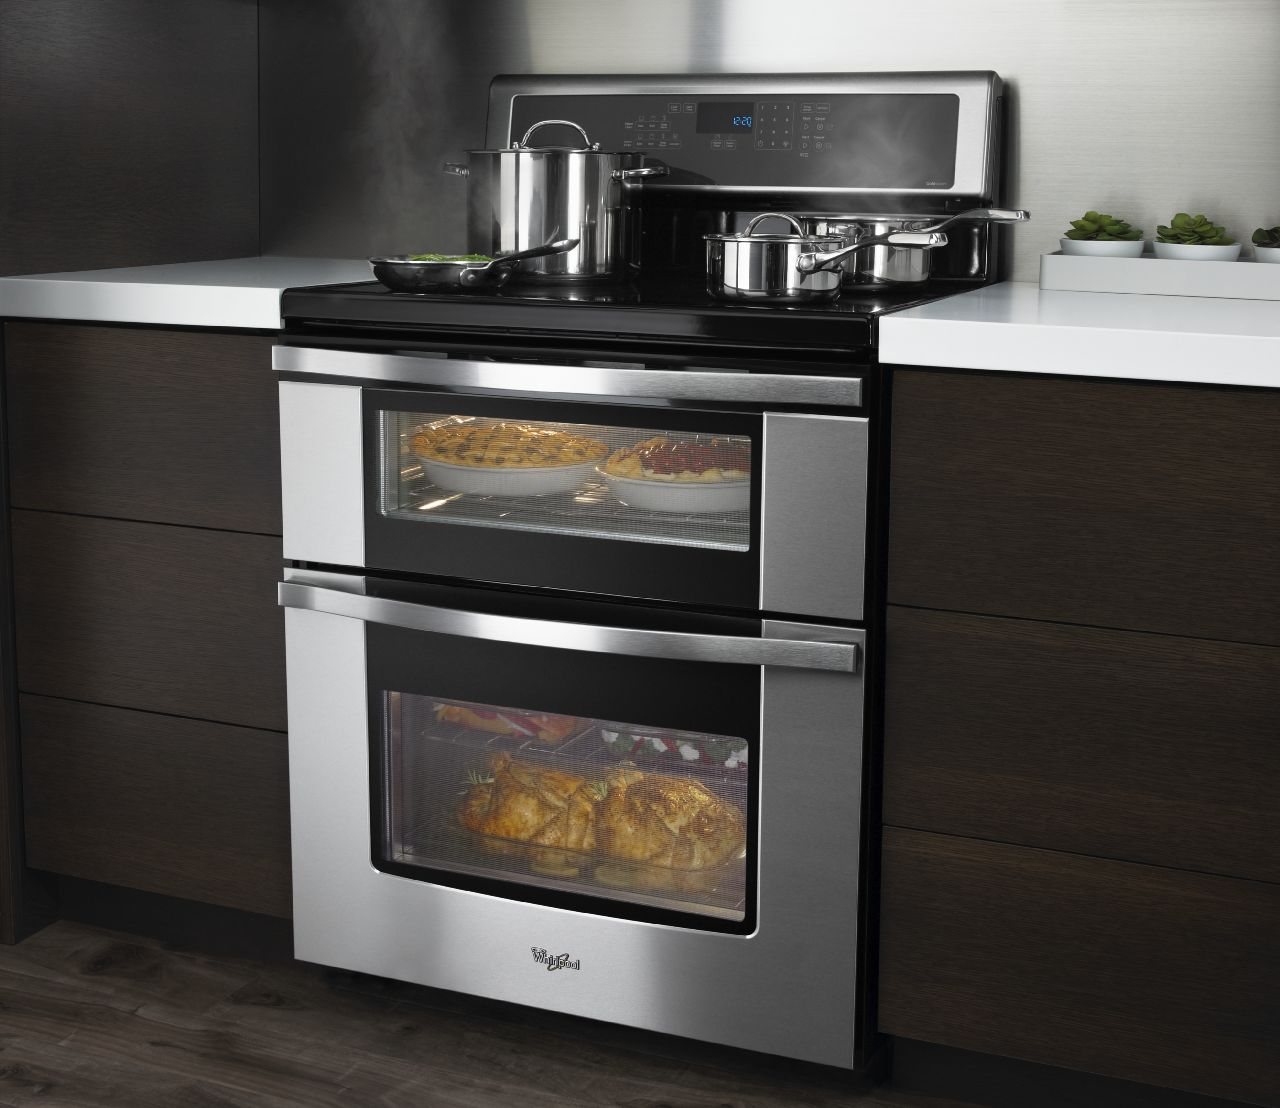 fisher paykel self cleaning oven instructions